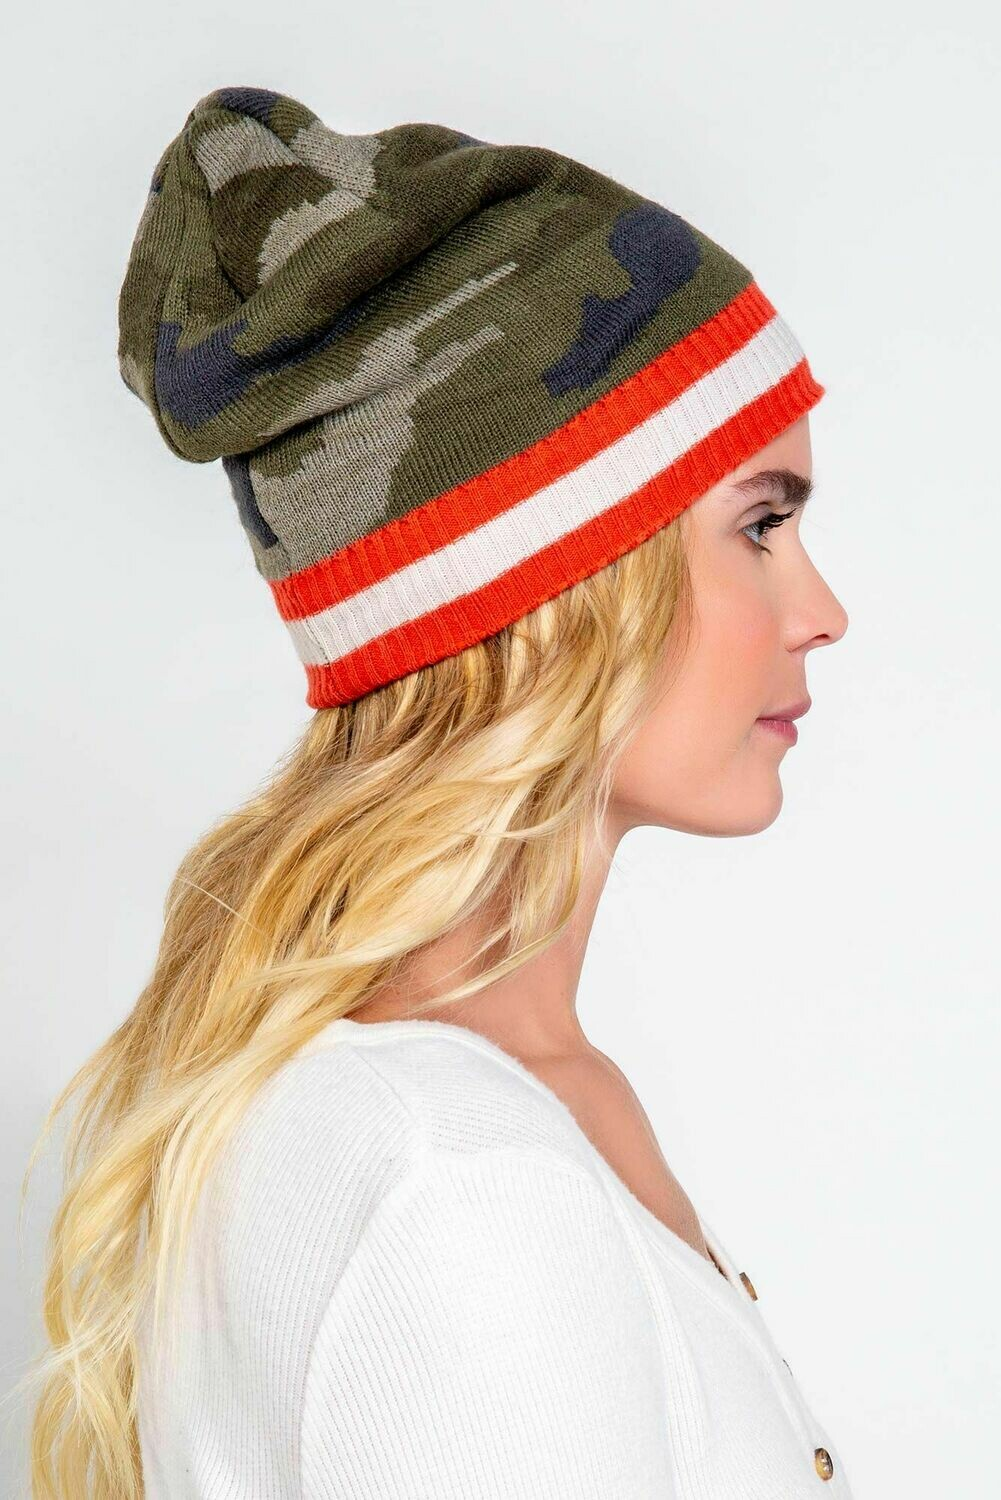 Bring on the Camo Beanie Hat